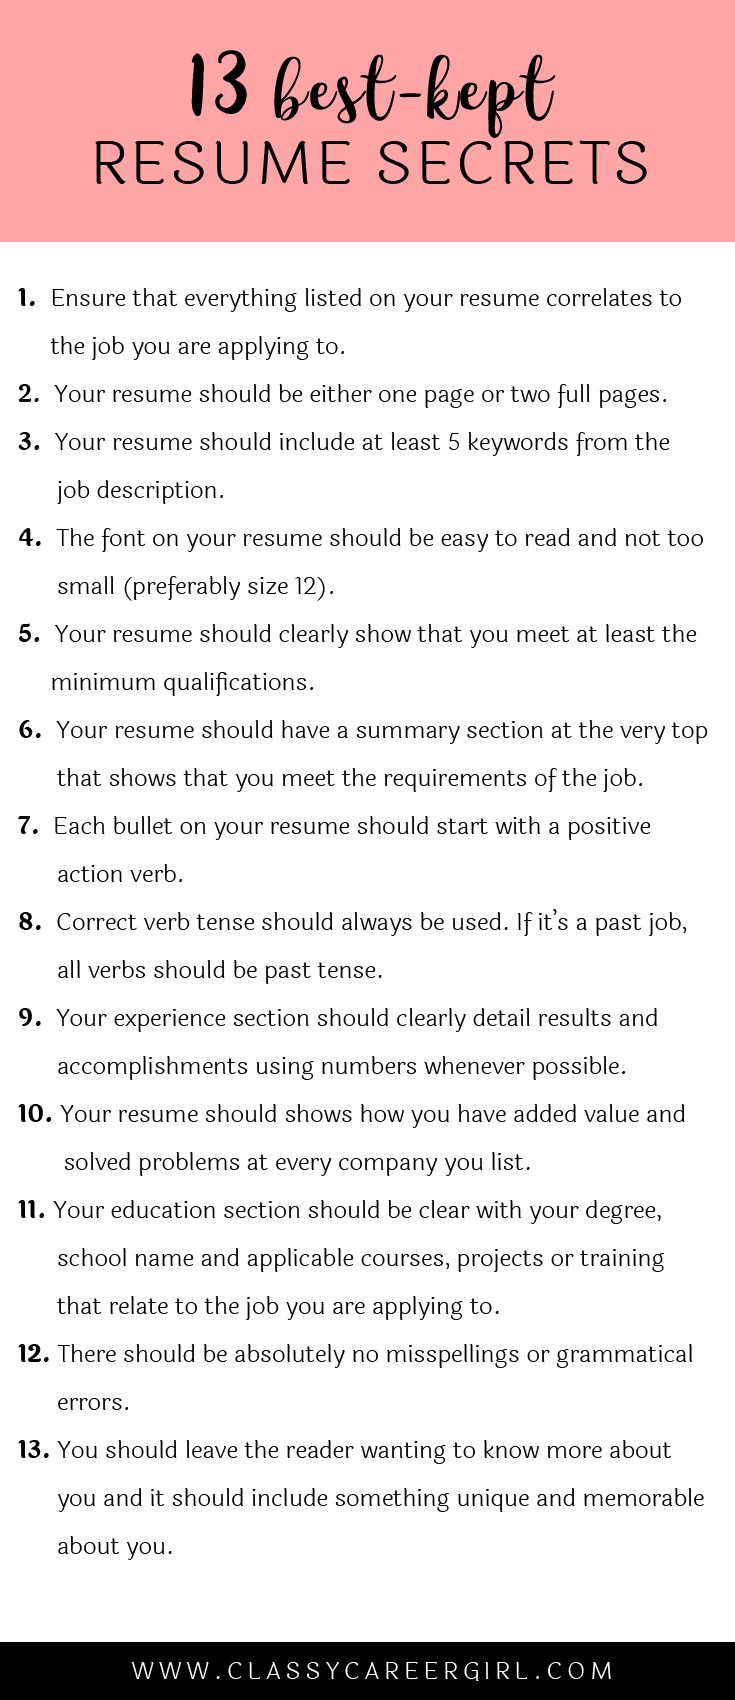 Opposenewapstandardsus  Fascinating  Ideas About Resume On Pinterest  Cv Format Resume Cv And  With Excellent Some Hiring Managers Will Toss Your Resume Out If You Dont Know These  With Beauteous Communication Skills For Resume Also Salesman Resume In Addition Accomplishments Resume And Video Resumes As Well As Retail Experience Resume Additionally Make A Free Resume Online From Pinterestcom With Opposenewapstandardsus  Excellent  Ideas About Resume On Pinterest  Cv Format Resume Cv And  With Beauteous Some Hiring Managers Will Toss Your Resume Out If You Dont Know These  And Fascinating Communication Skills For Resume Also Salesman Resume In Addition Accomplishments Resume From Pinterestcom